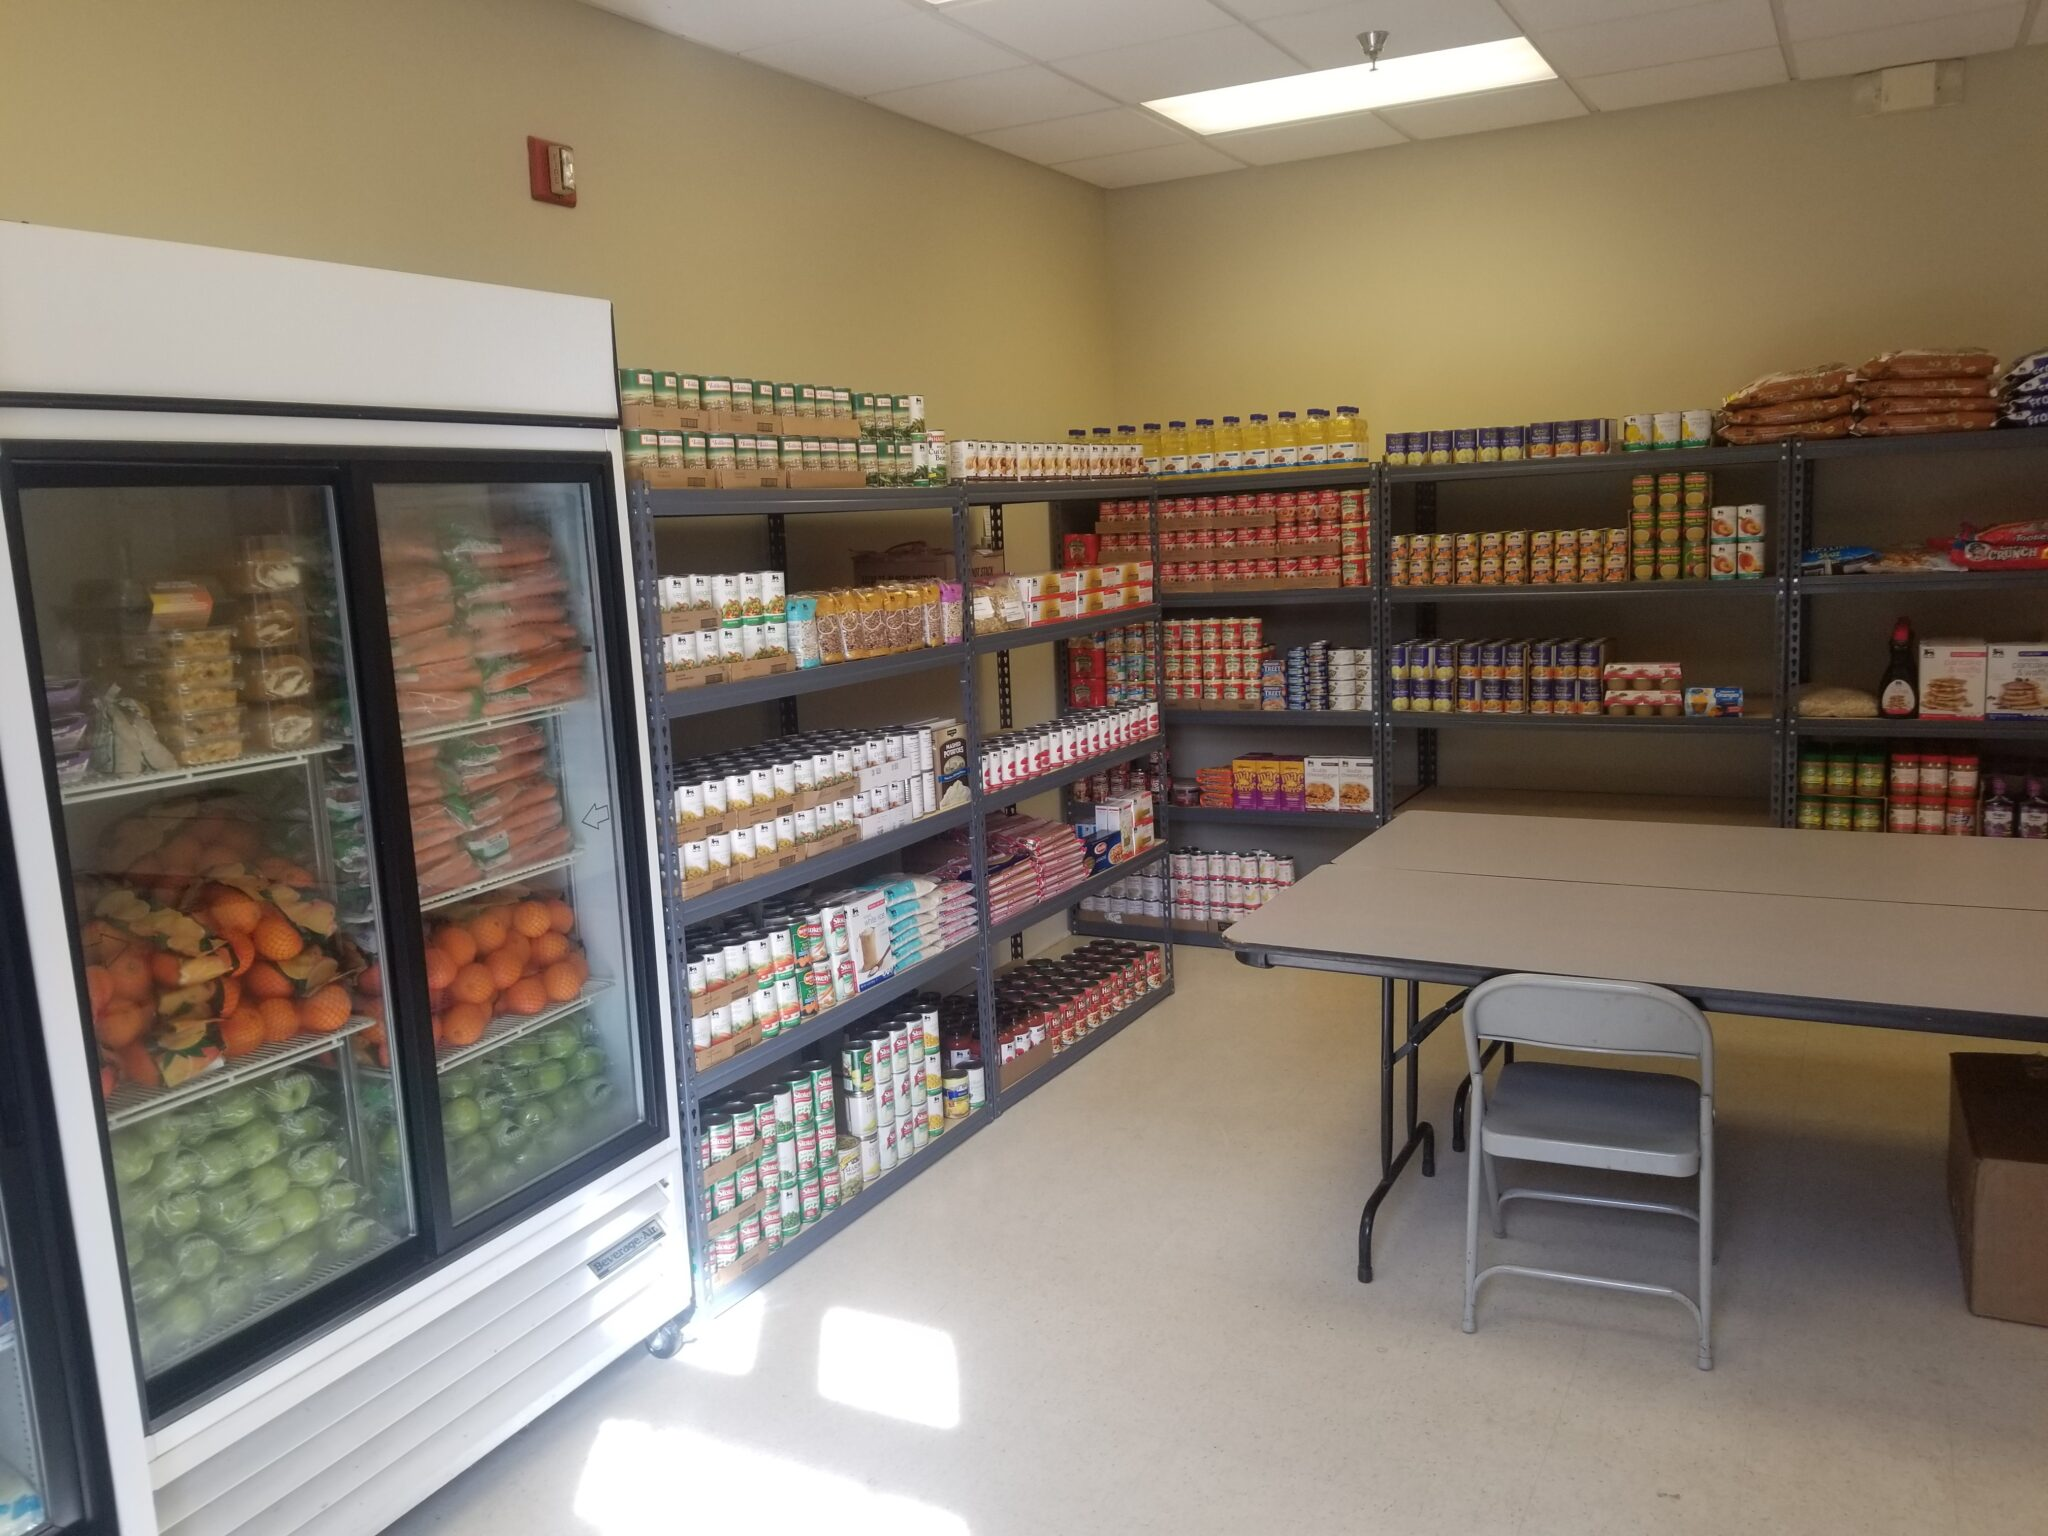 Food Lion Feeds Great Pantry Makeover_Clarksville Food Pantry after picture 2